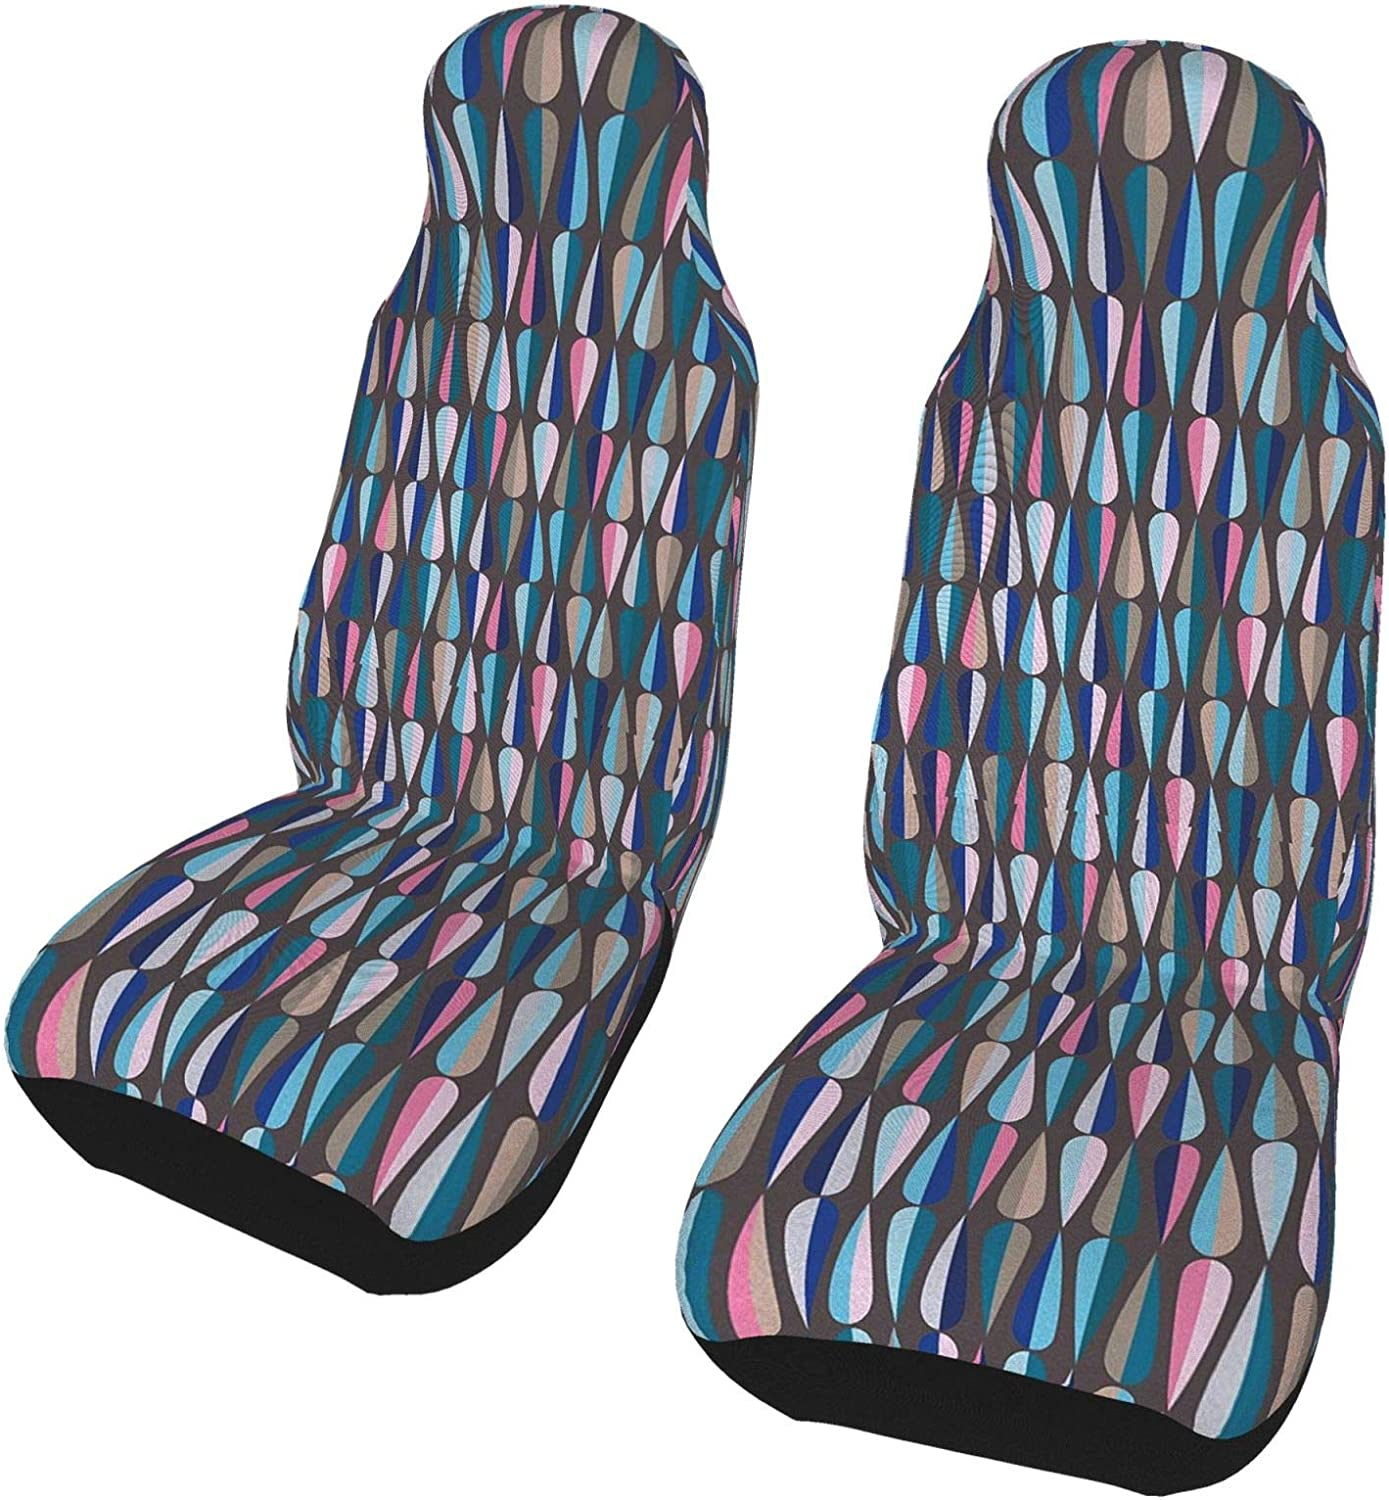 REDDATES Droplet Shapes Mosaic Ranking TOP6 in Seat Tones Car Front Las Vegas Mall Cover